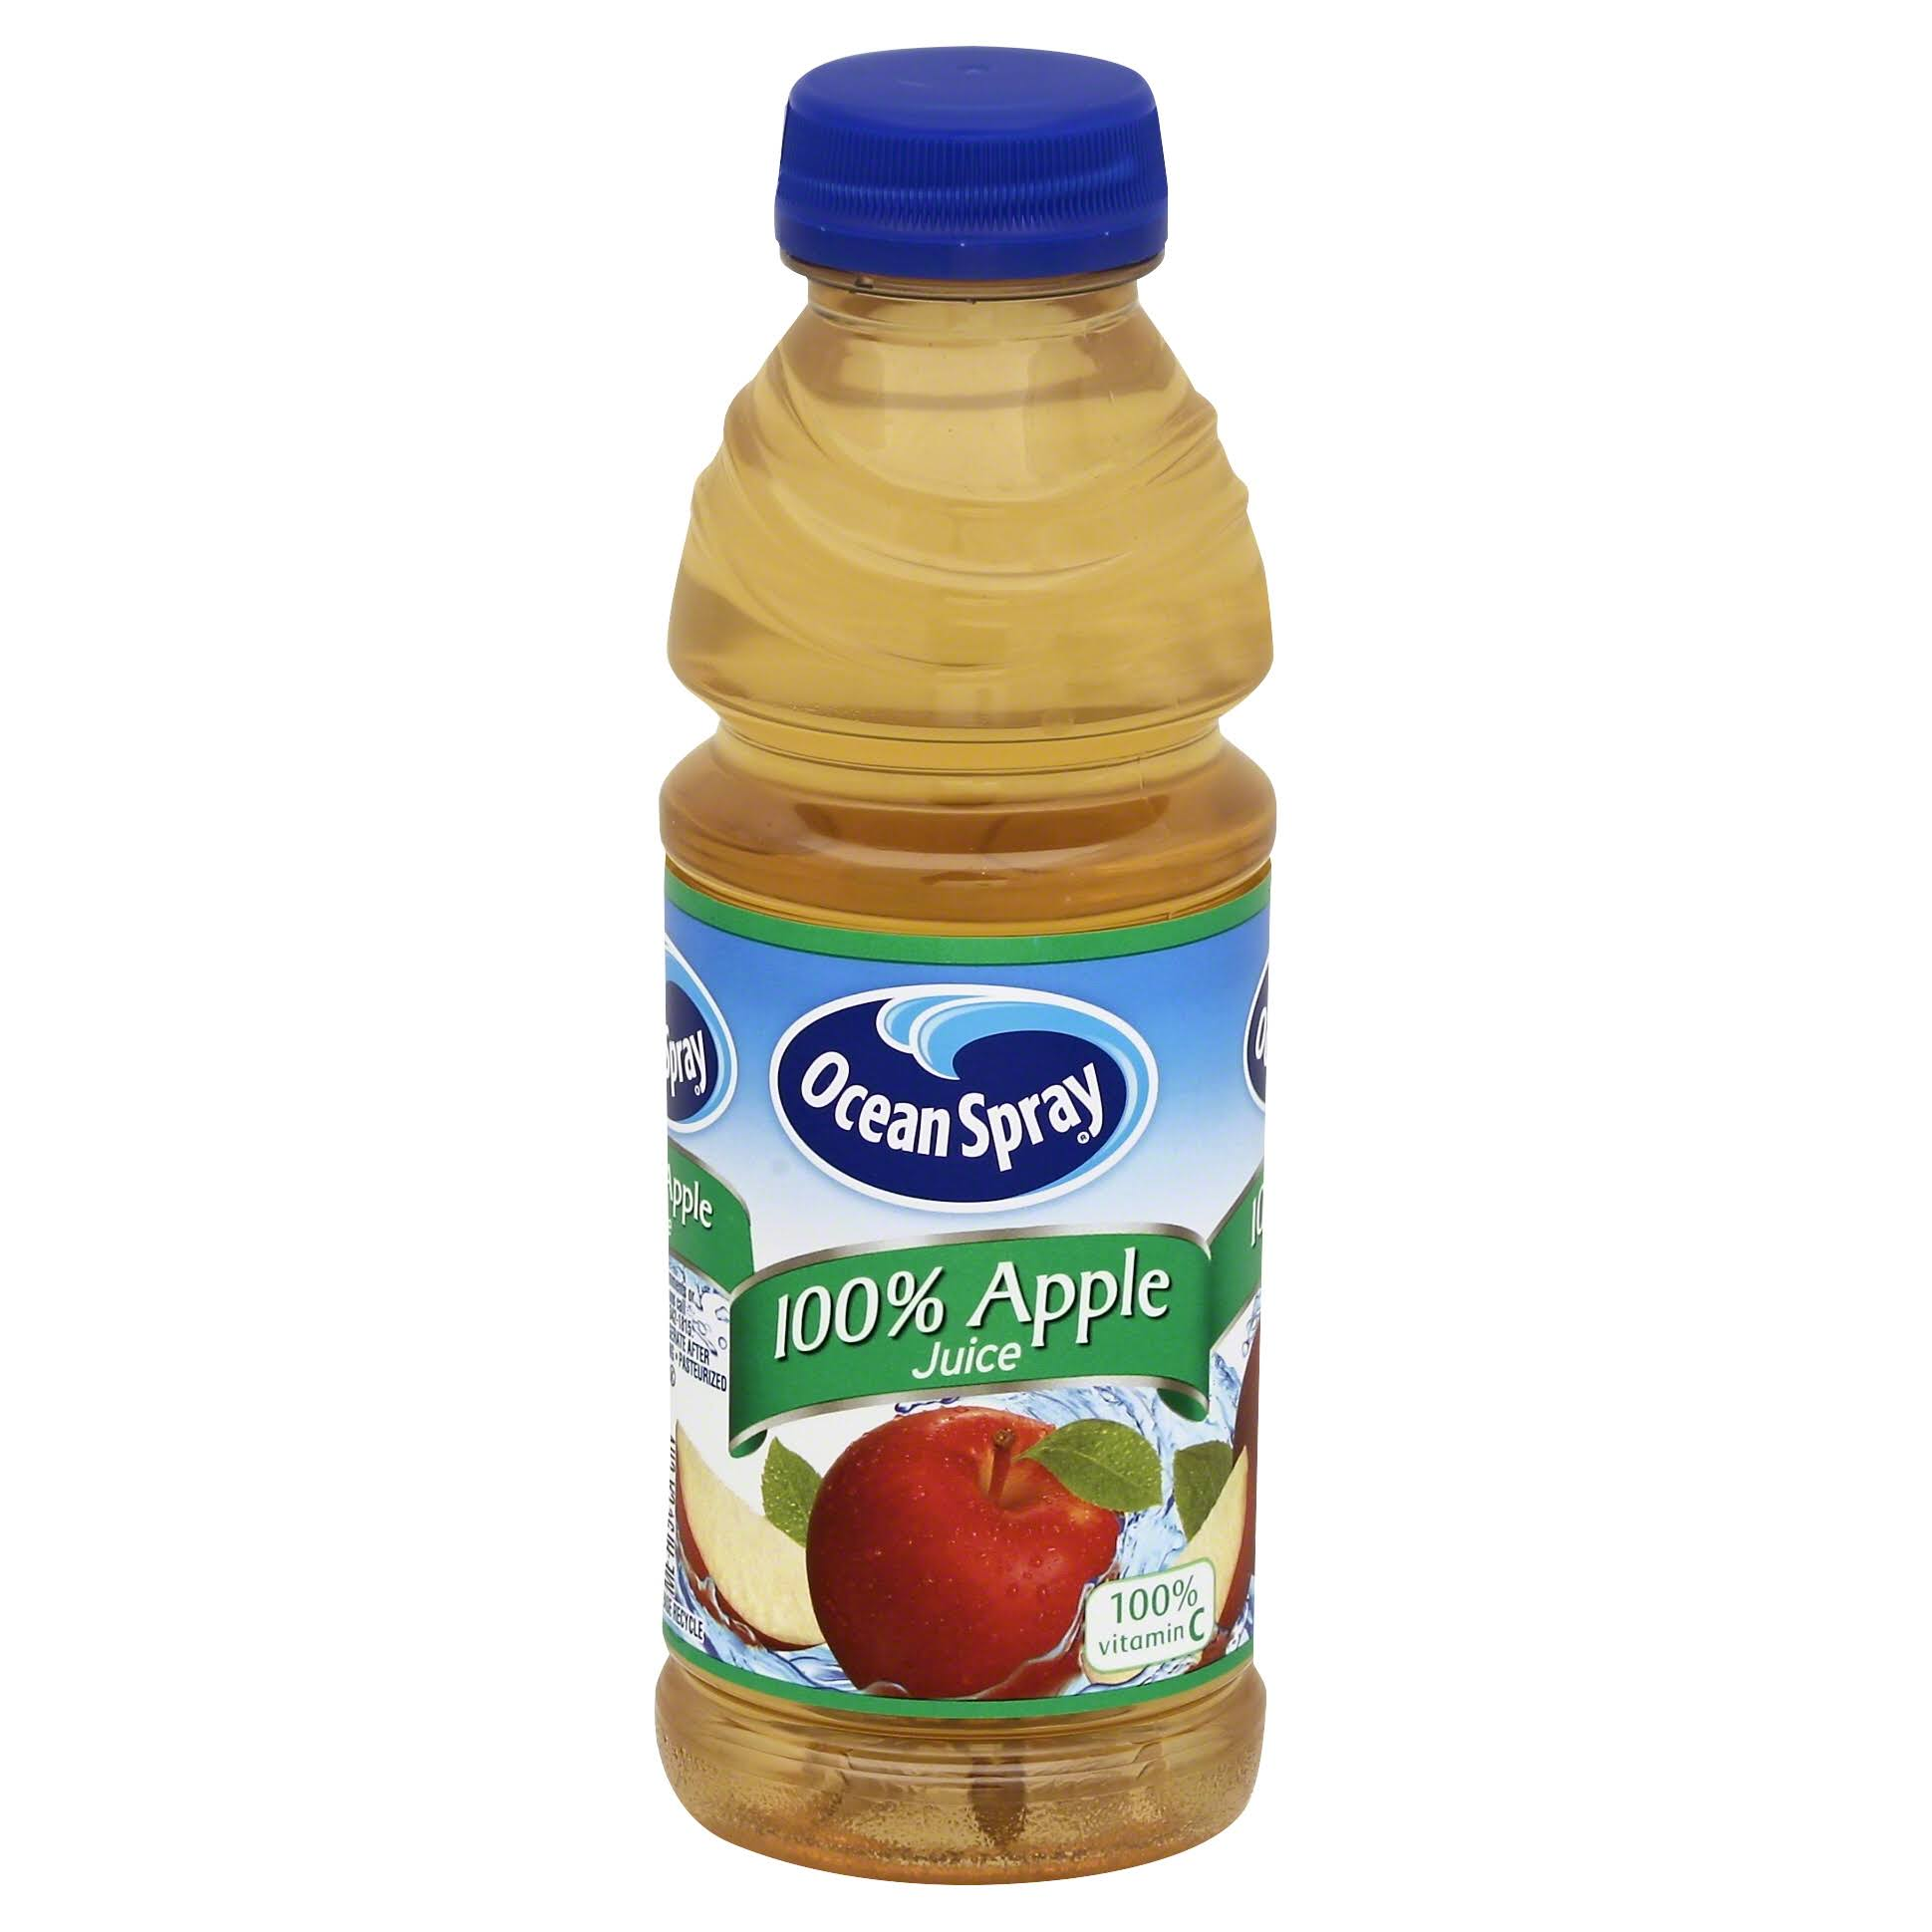 Ocean Spray 100% Apple Juice - 15.2 fl oz